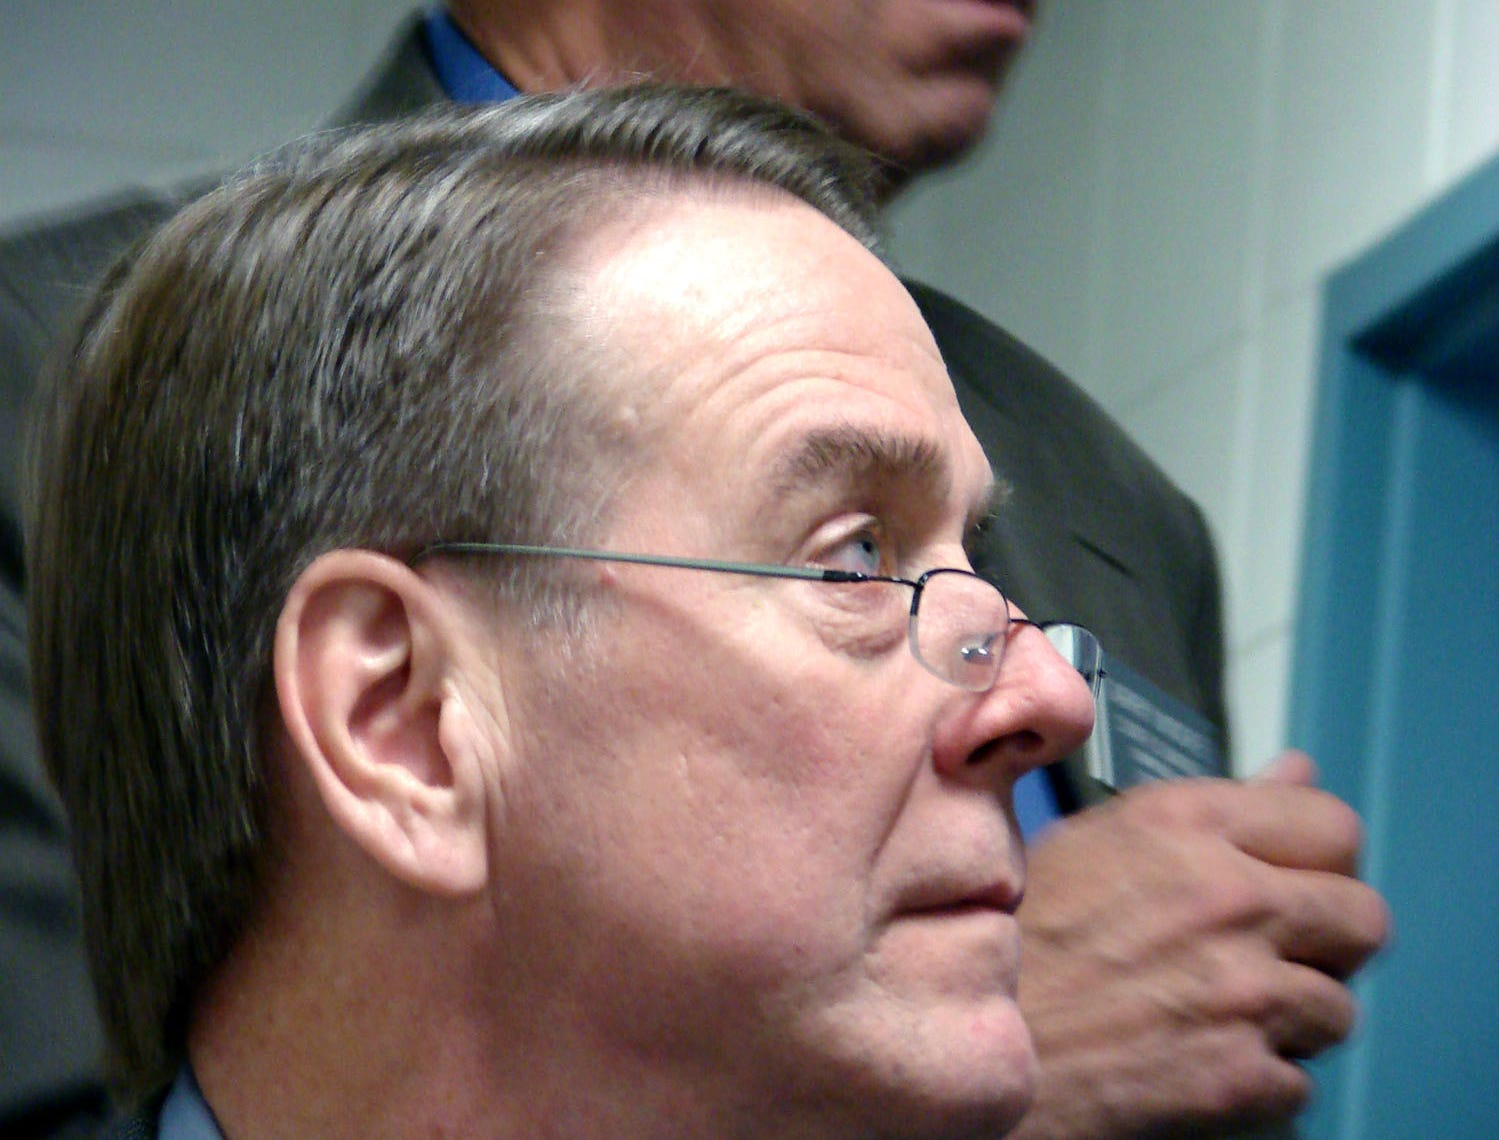 State Supreme Court Justice Steven Zinter, foreground, and state Sen. Garry Moore, D-Yankton, listen Tuesday, Dec. 5, 2006, during a tour of a new methamphetamine treatment center in Pierre, S.D. The two men are members of the state Corrections Commission. (AP Photo/Joe Kafka)